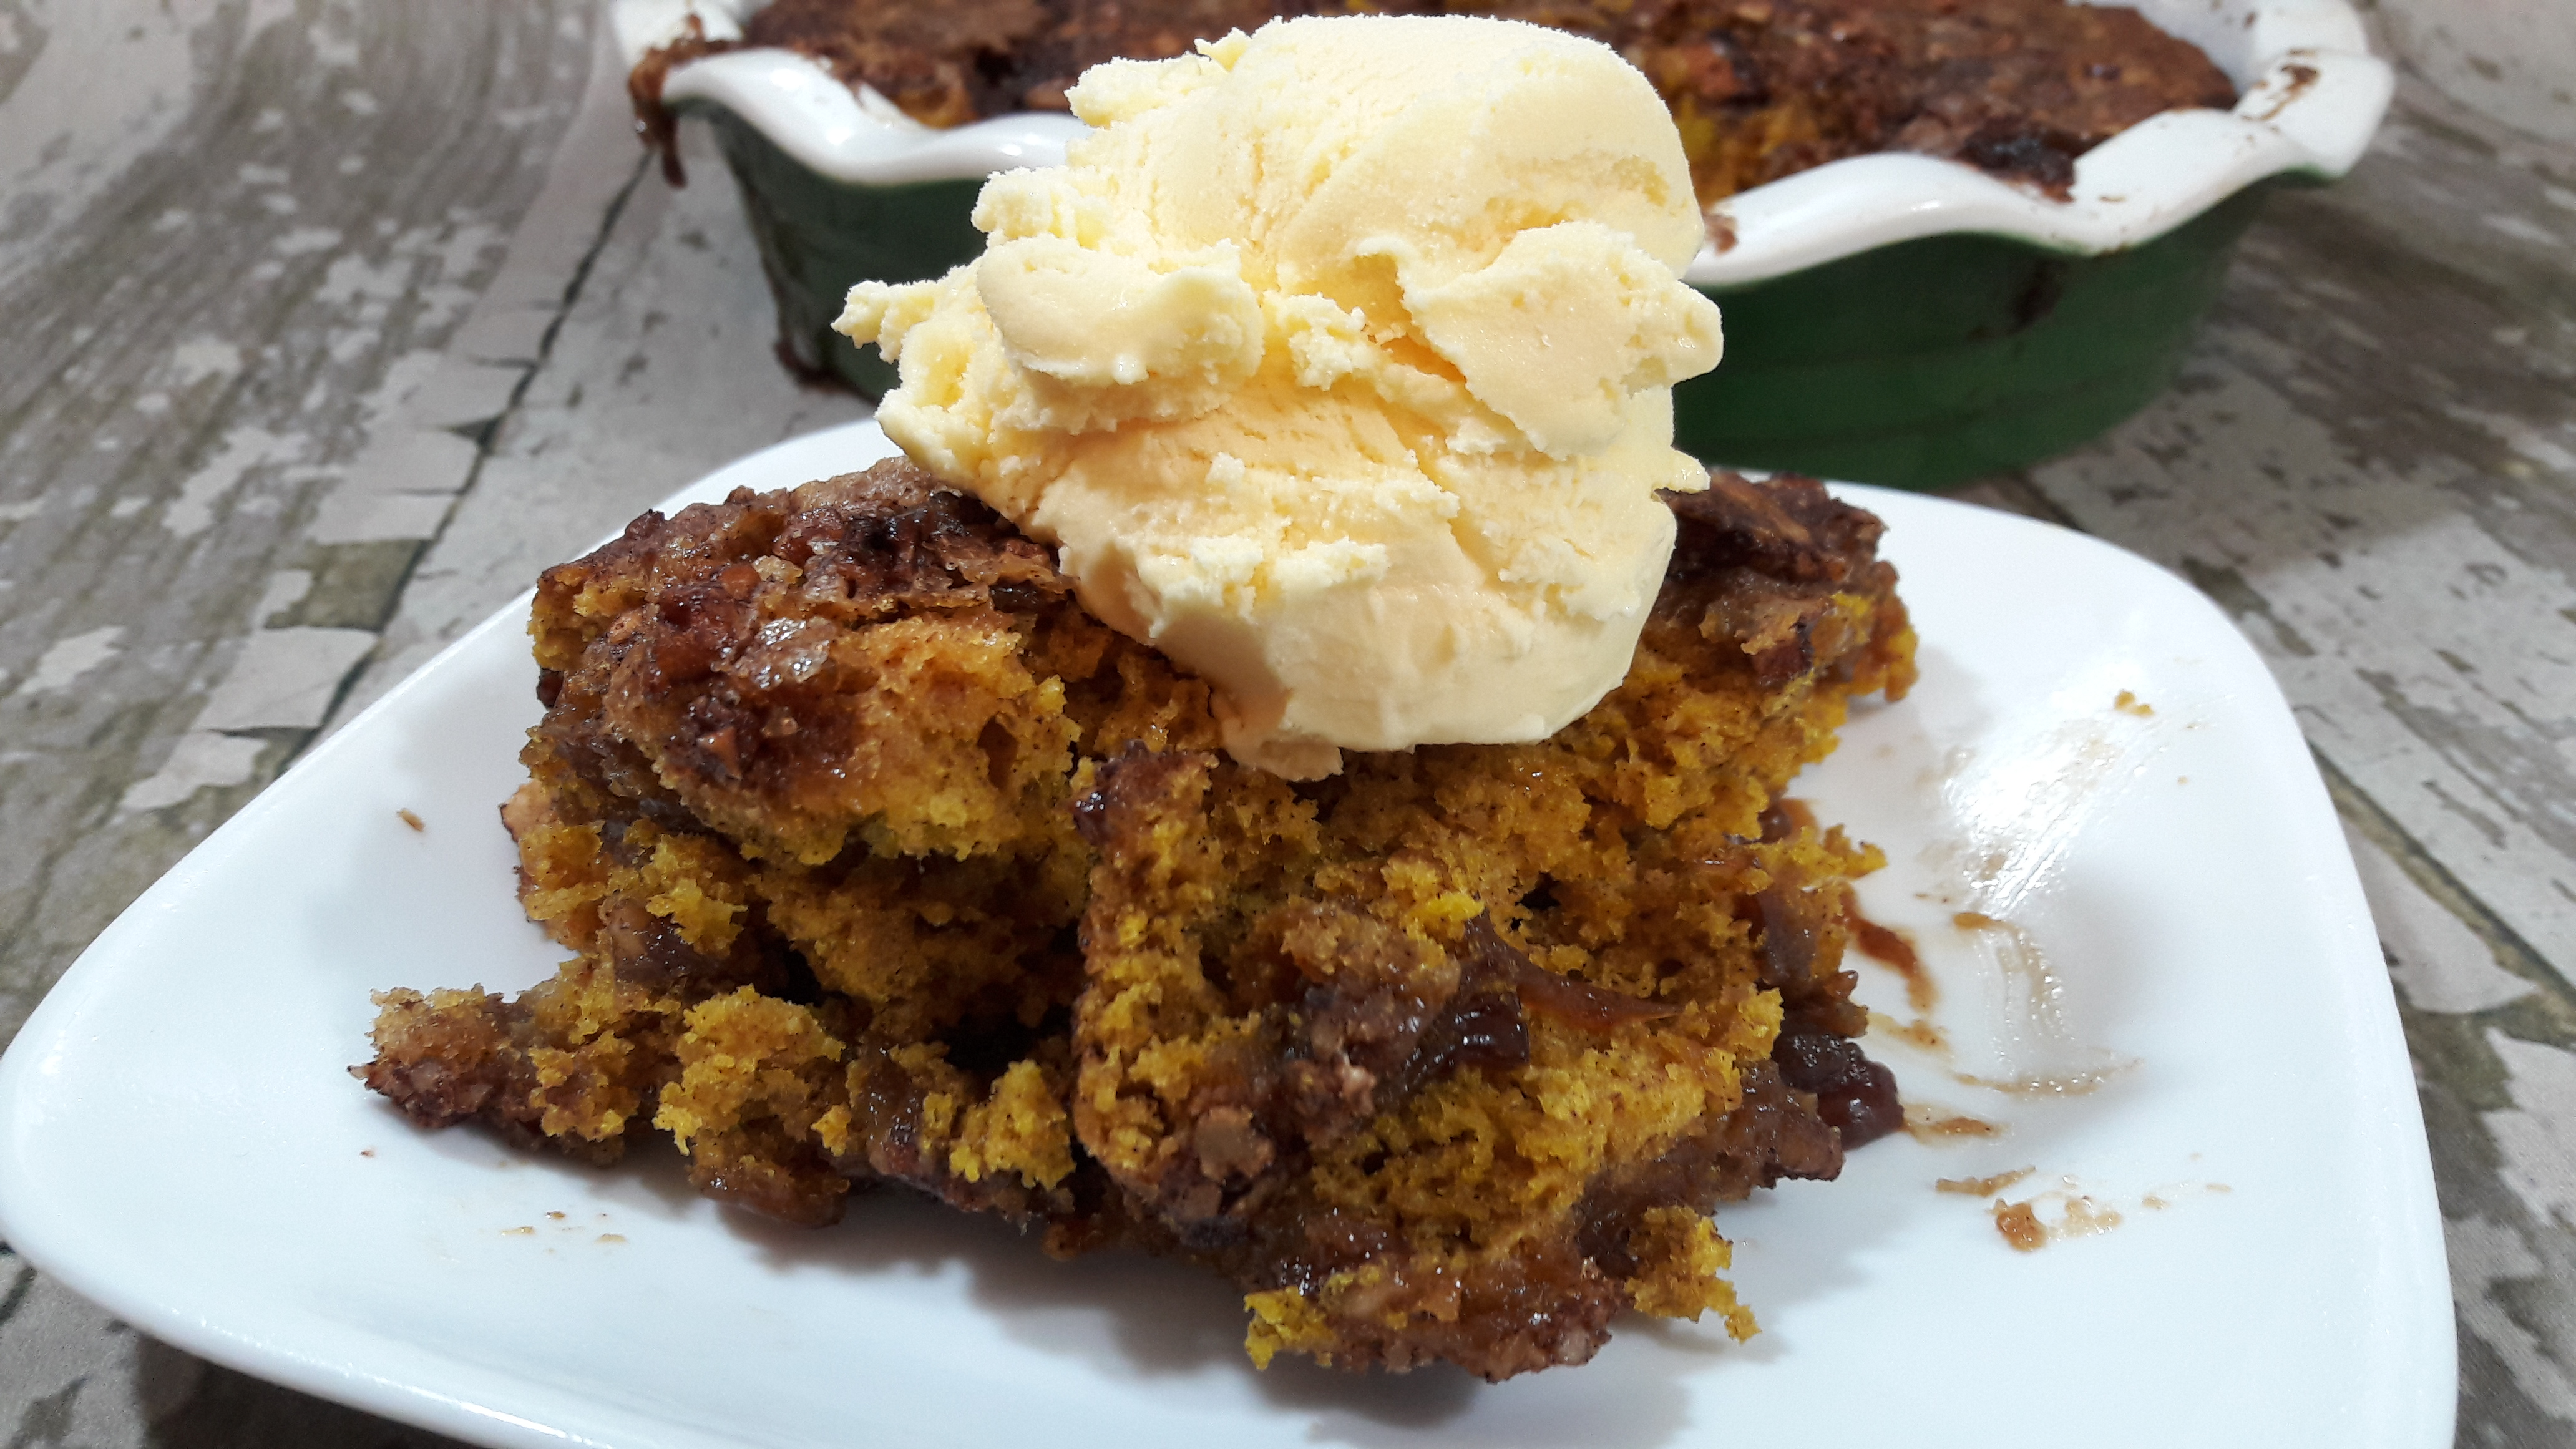 Love Pie Try This Healthy Cobbler Recipe Tonight pictures